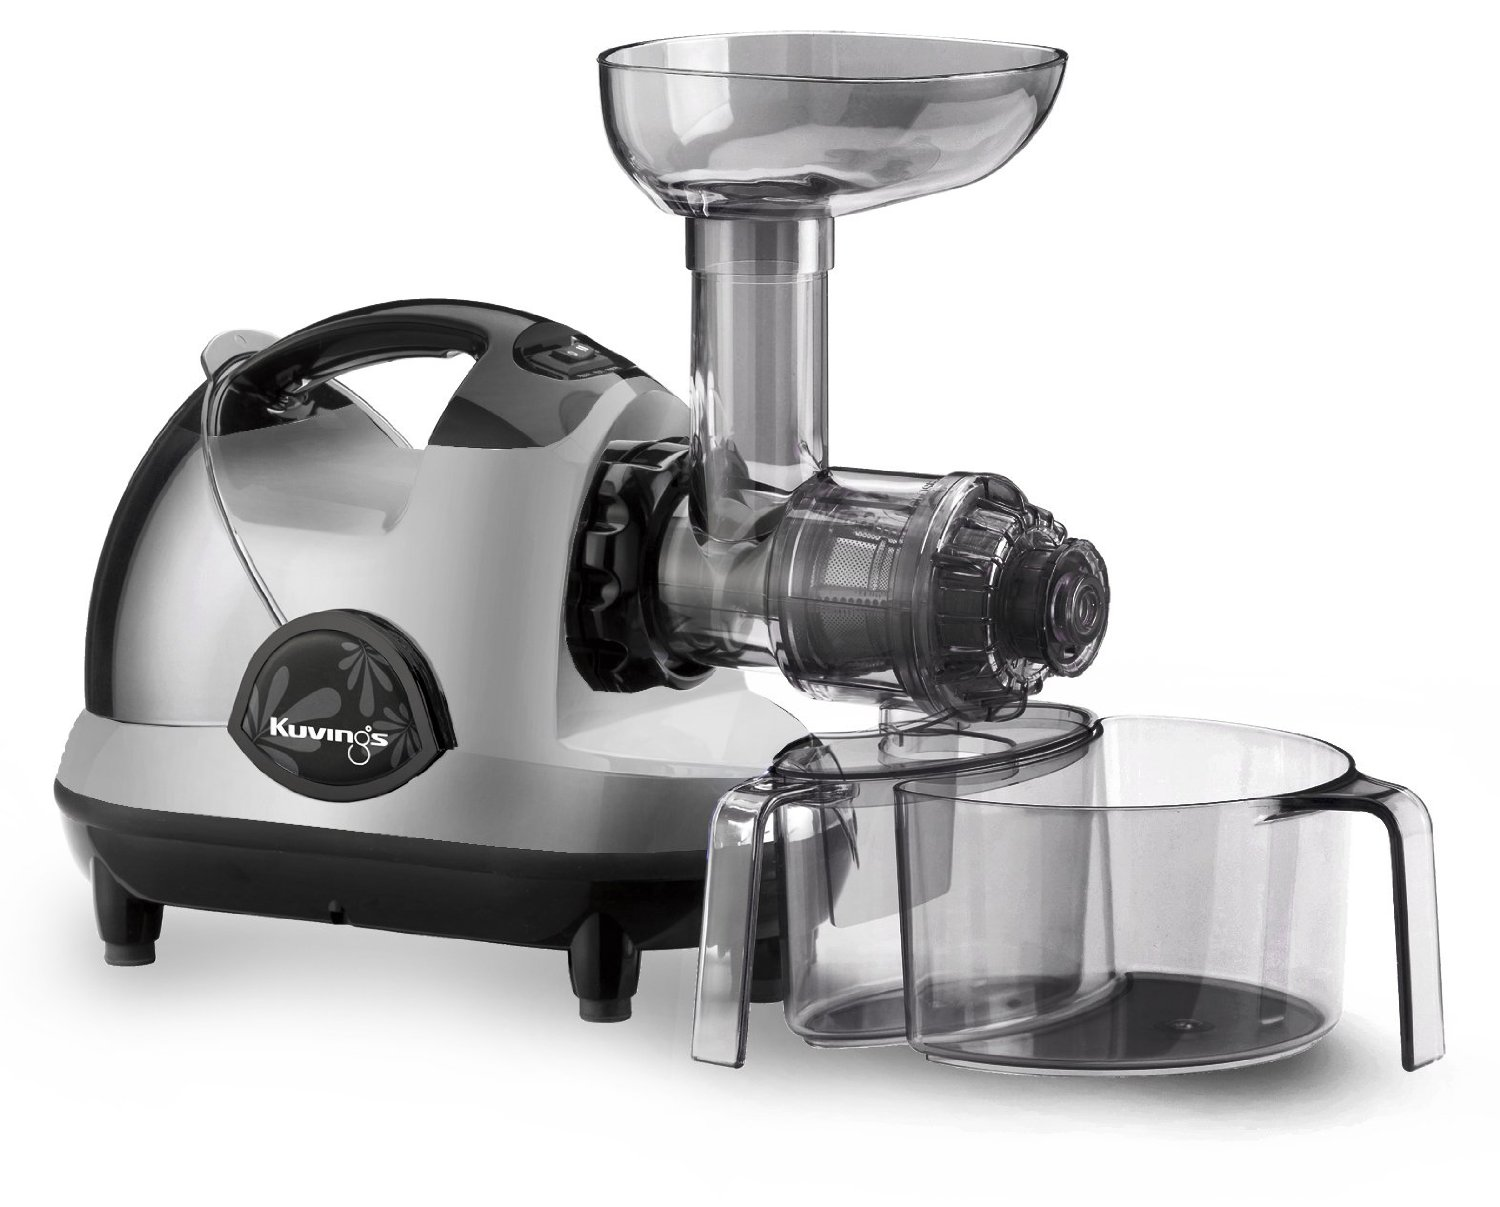 Best Masticating Juicer For Home Use : Kuvings NJE3580U Masticating Slow Juicer